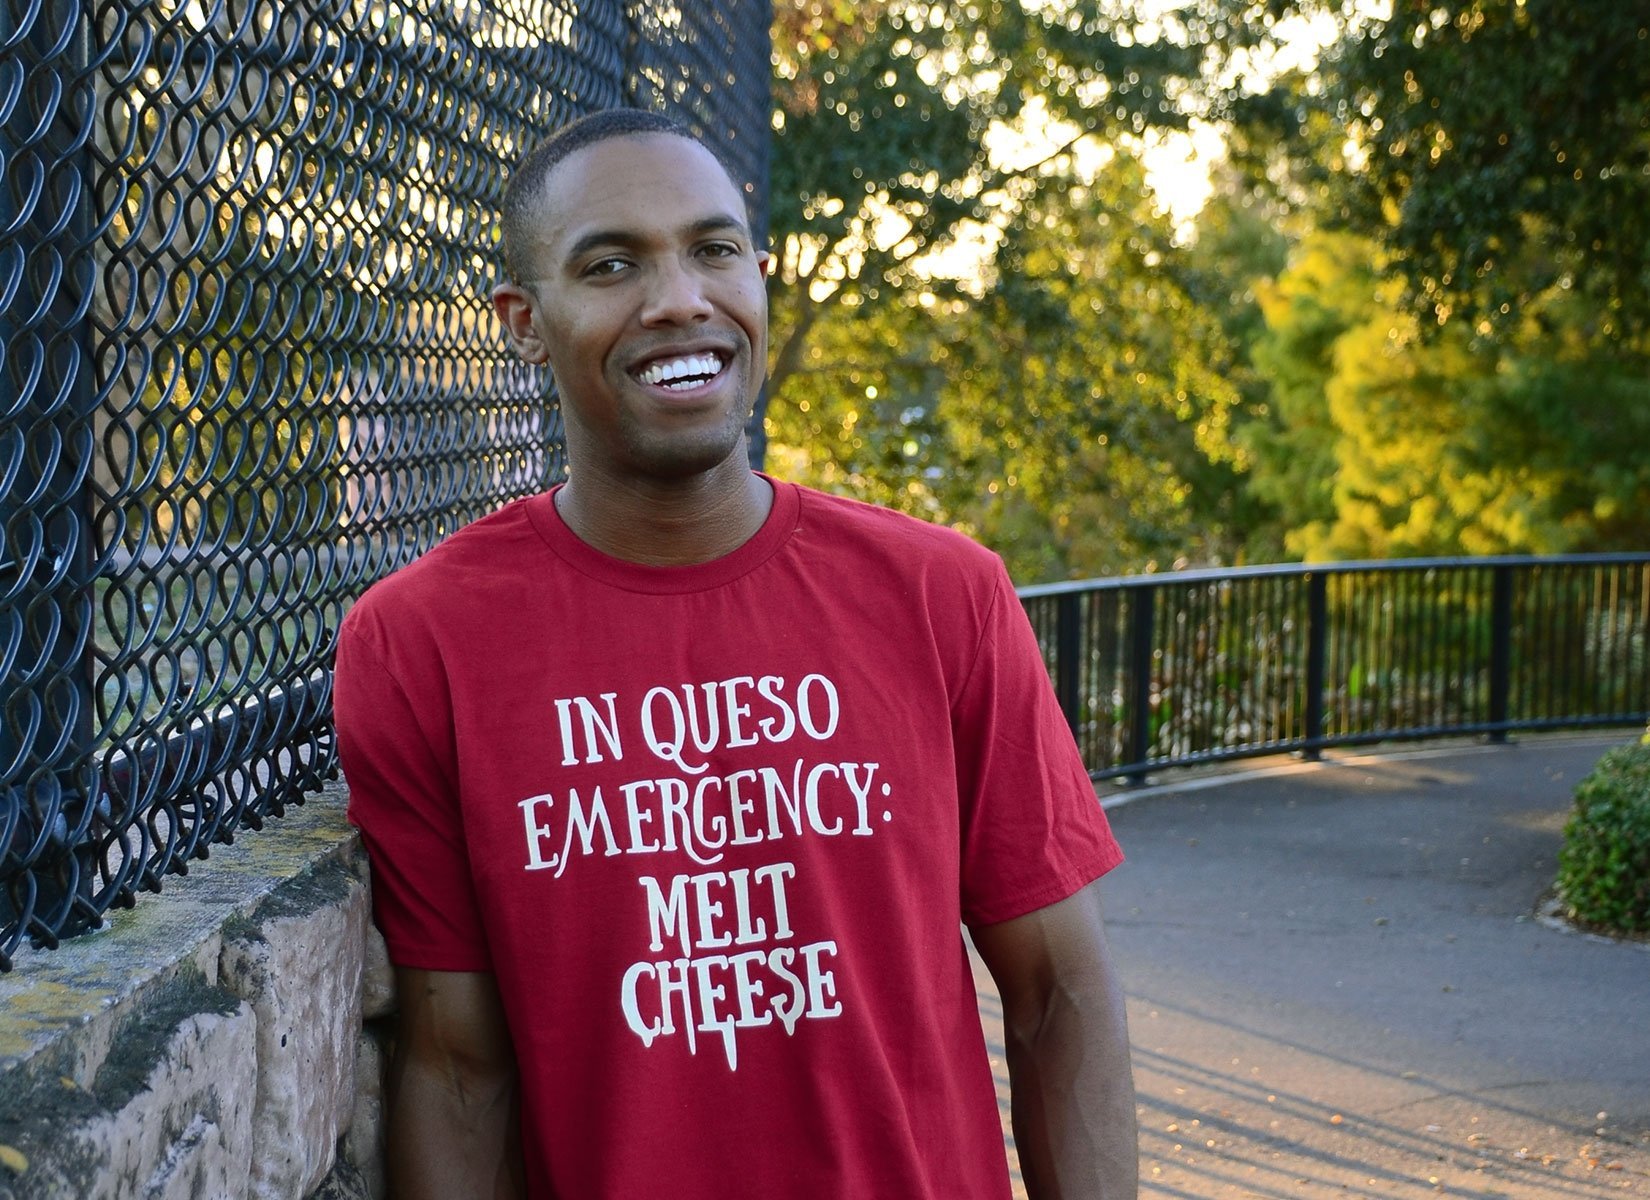 In Queso Emergency: Melt Cheese on Mens T-Shirt